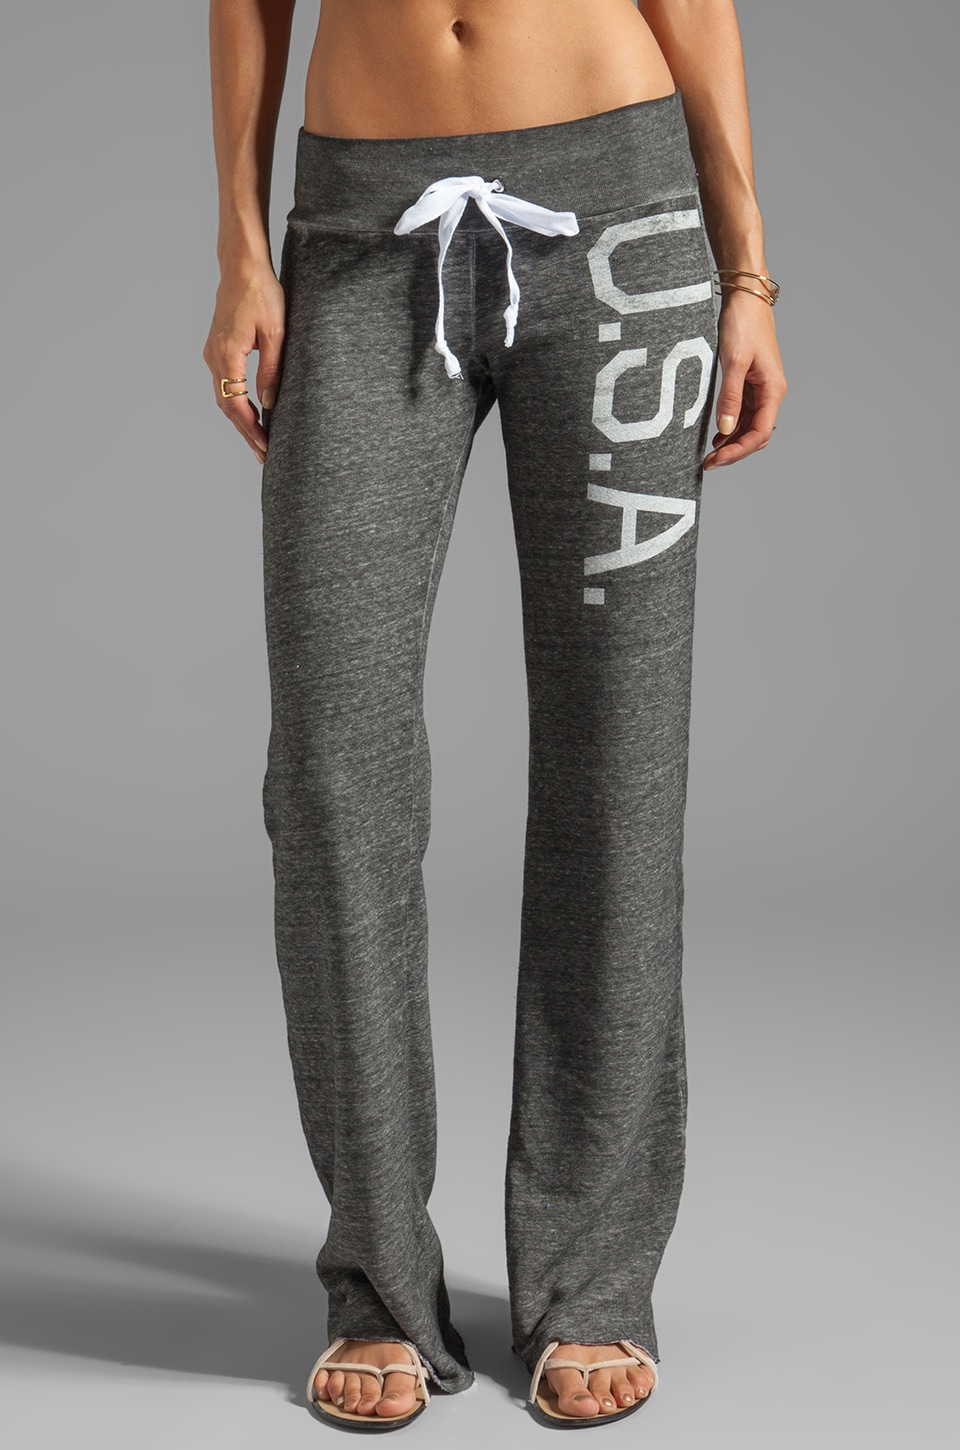 Rebel Yell U.S.A. Boyfriend Pants in Heather Gray